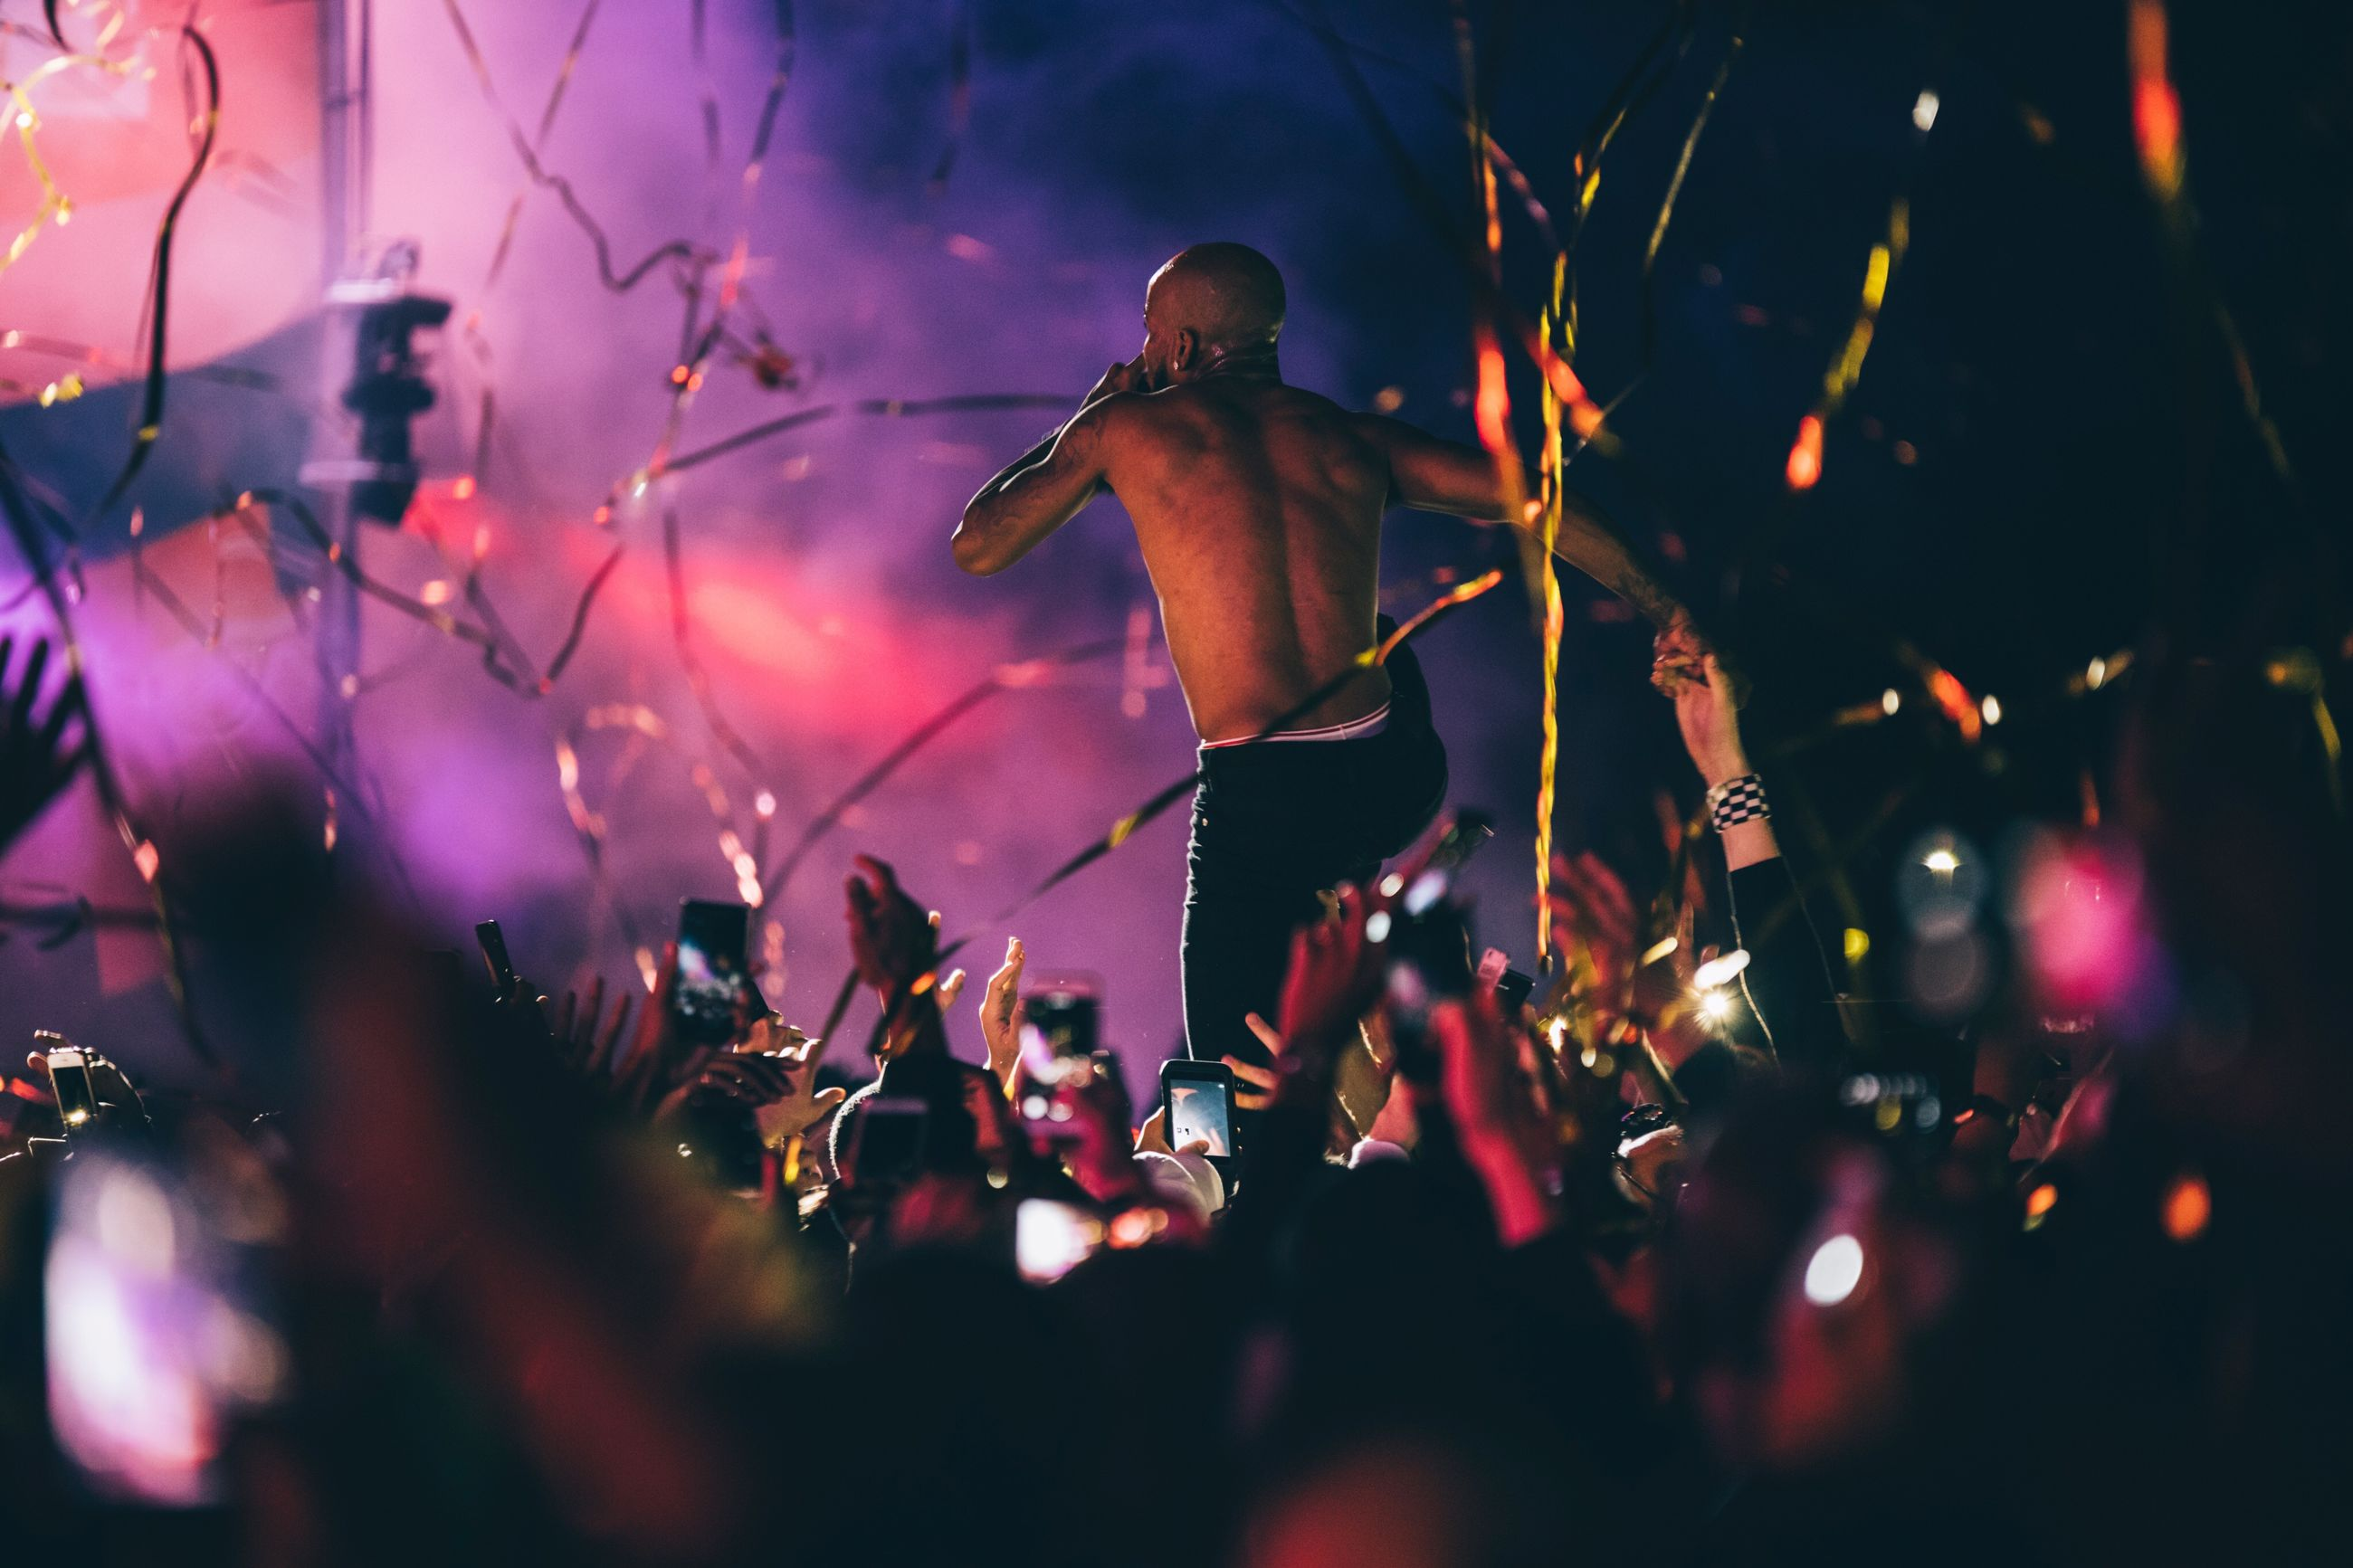 enjoyment, event, fun, large group of people, night, celebration, nightlife, selective focus, crowd, performance, excitement, music, arts culture and entertainment, togetherness, leisure activity, audience, popular music concert, outdoors, illuminated, youth culture, real people, close-up, people